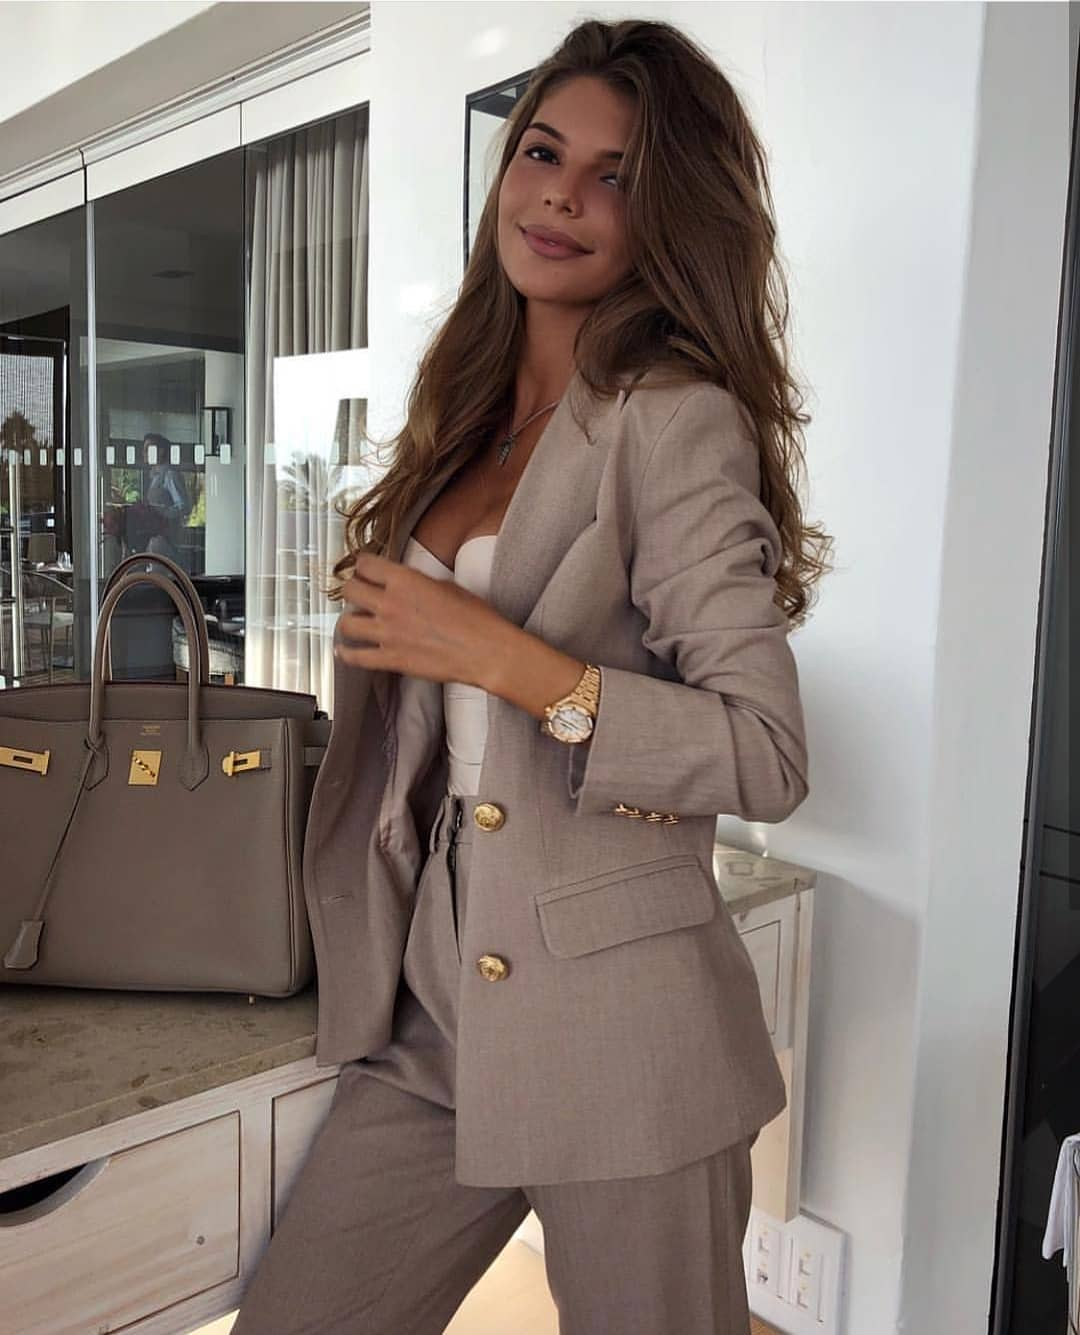 Grey Beige Pantsuit For Office Hours In Summertime 2020